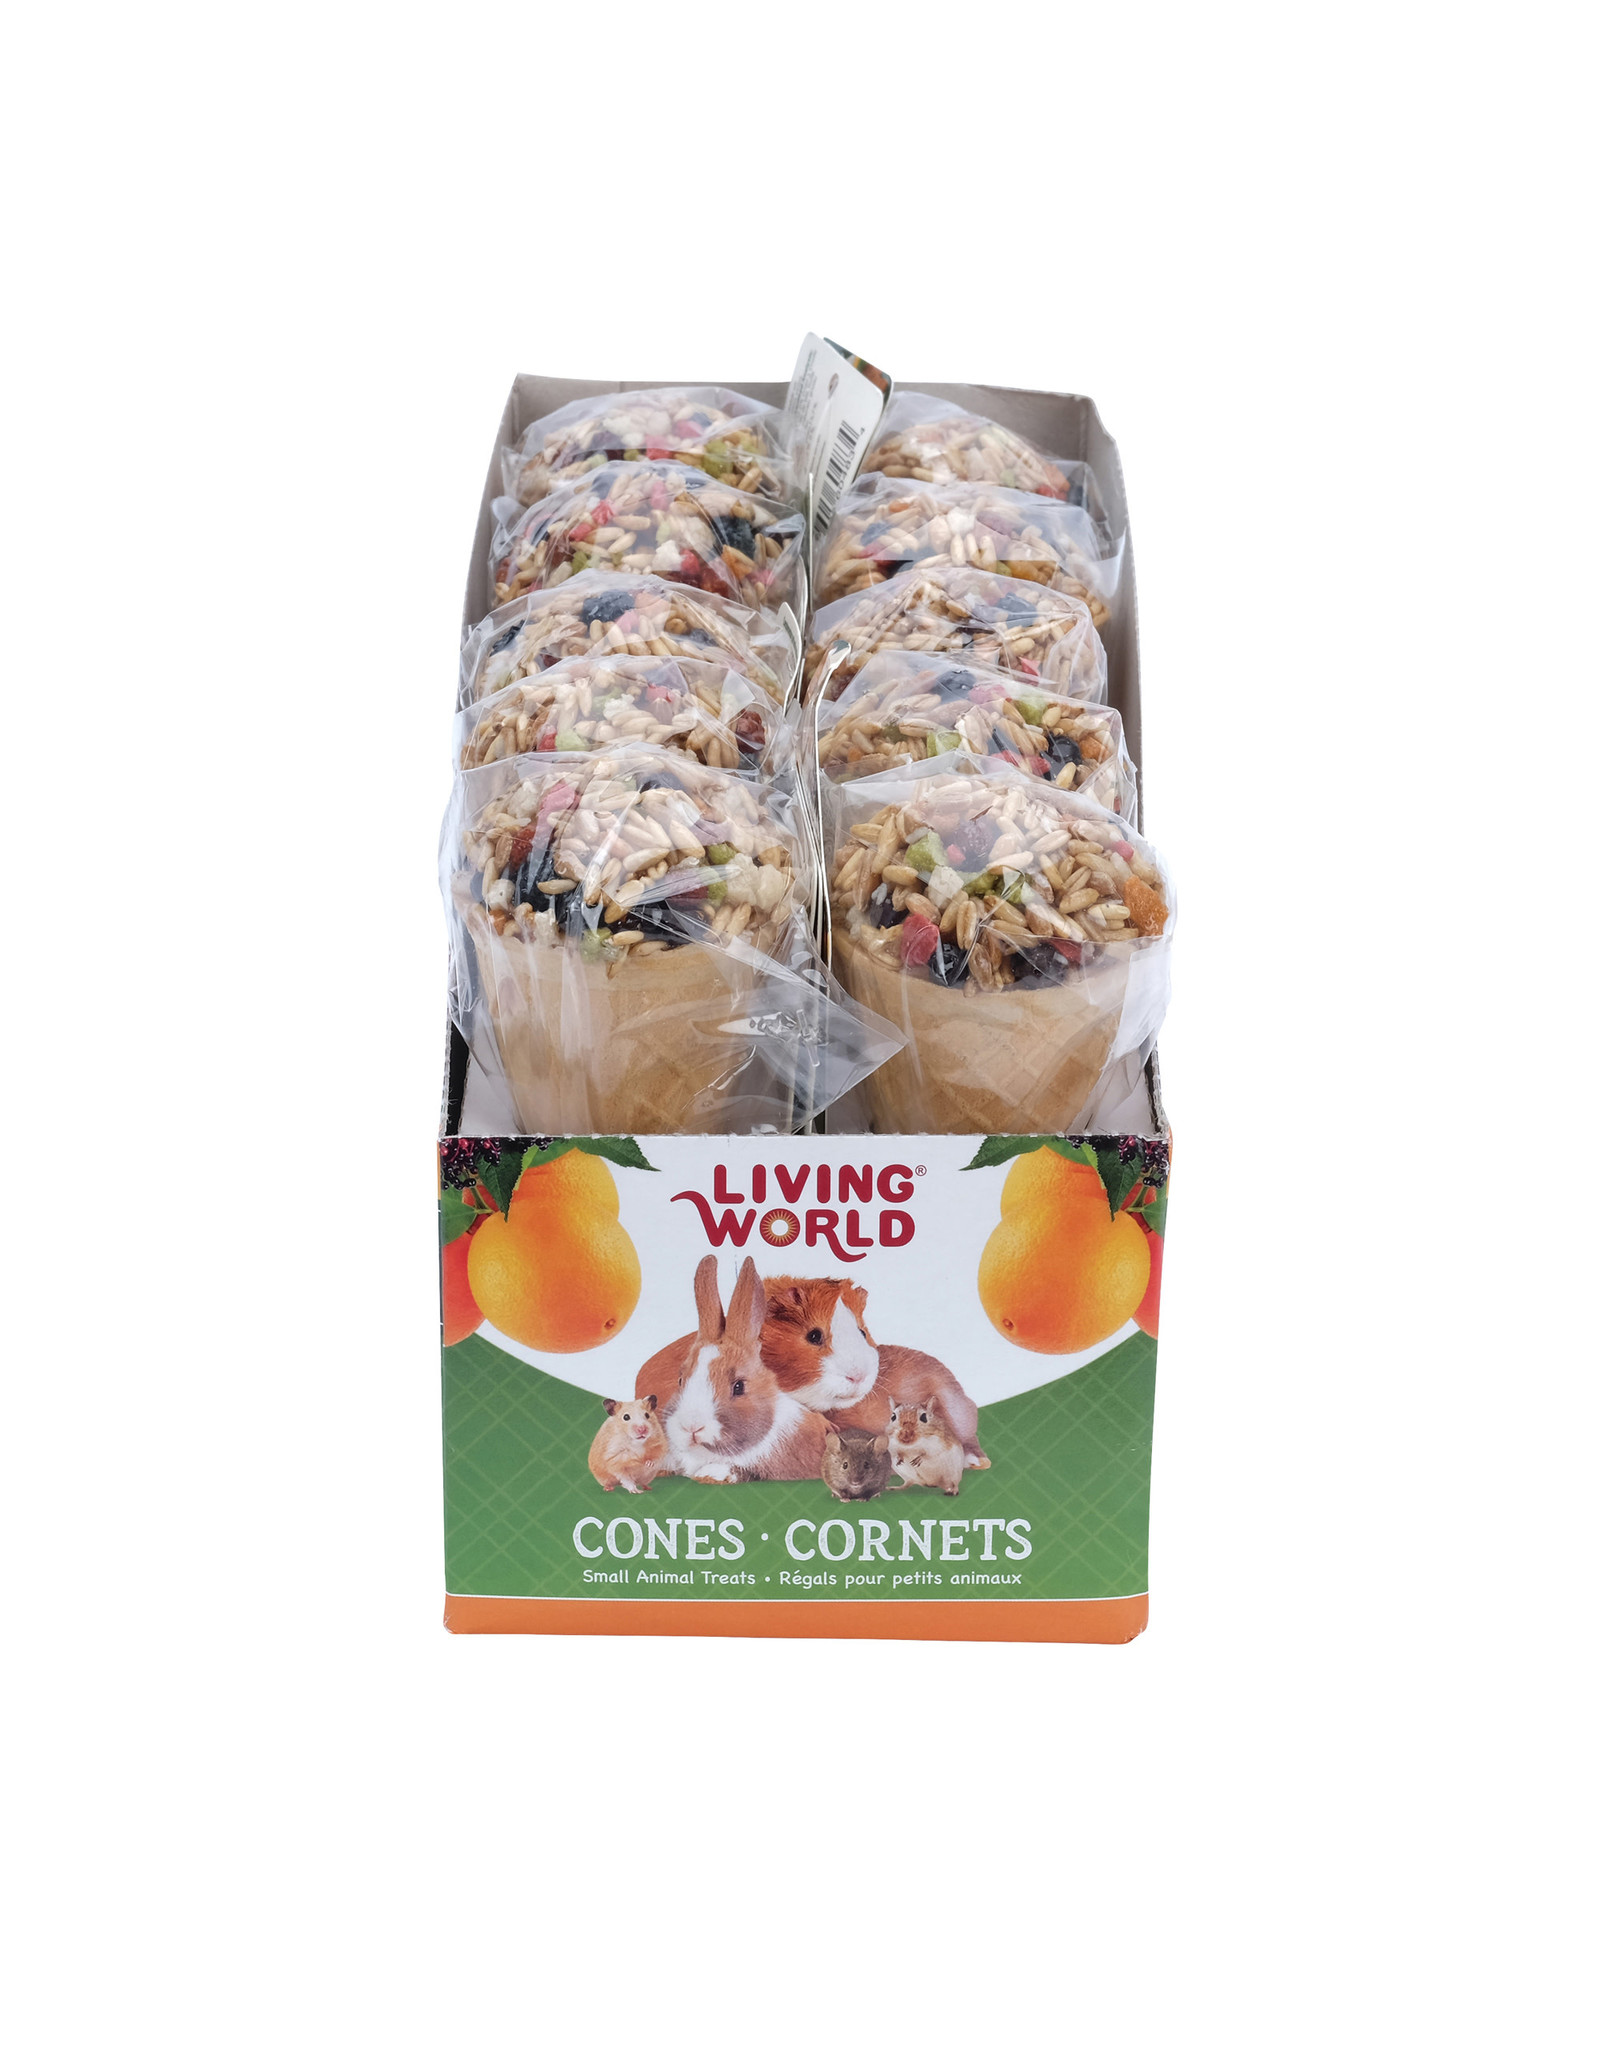 Living World Living World Small Animal Cone, Fruit Flavour, 40 g (1.4 oz)